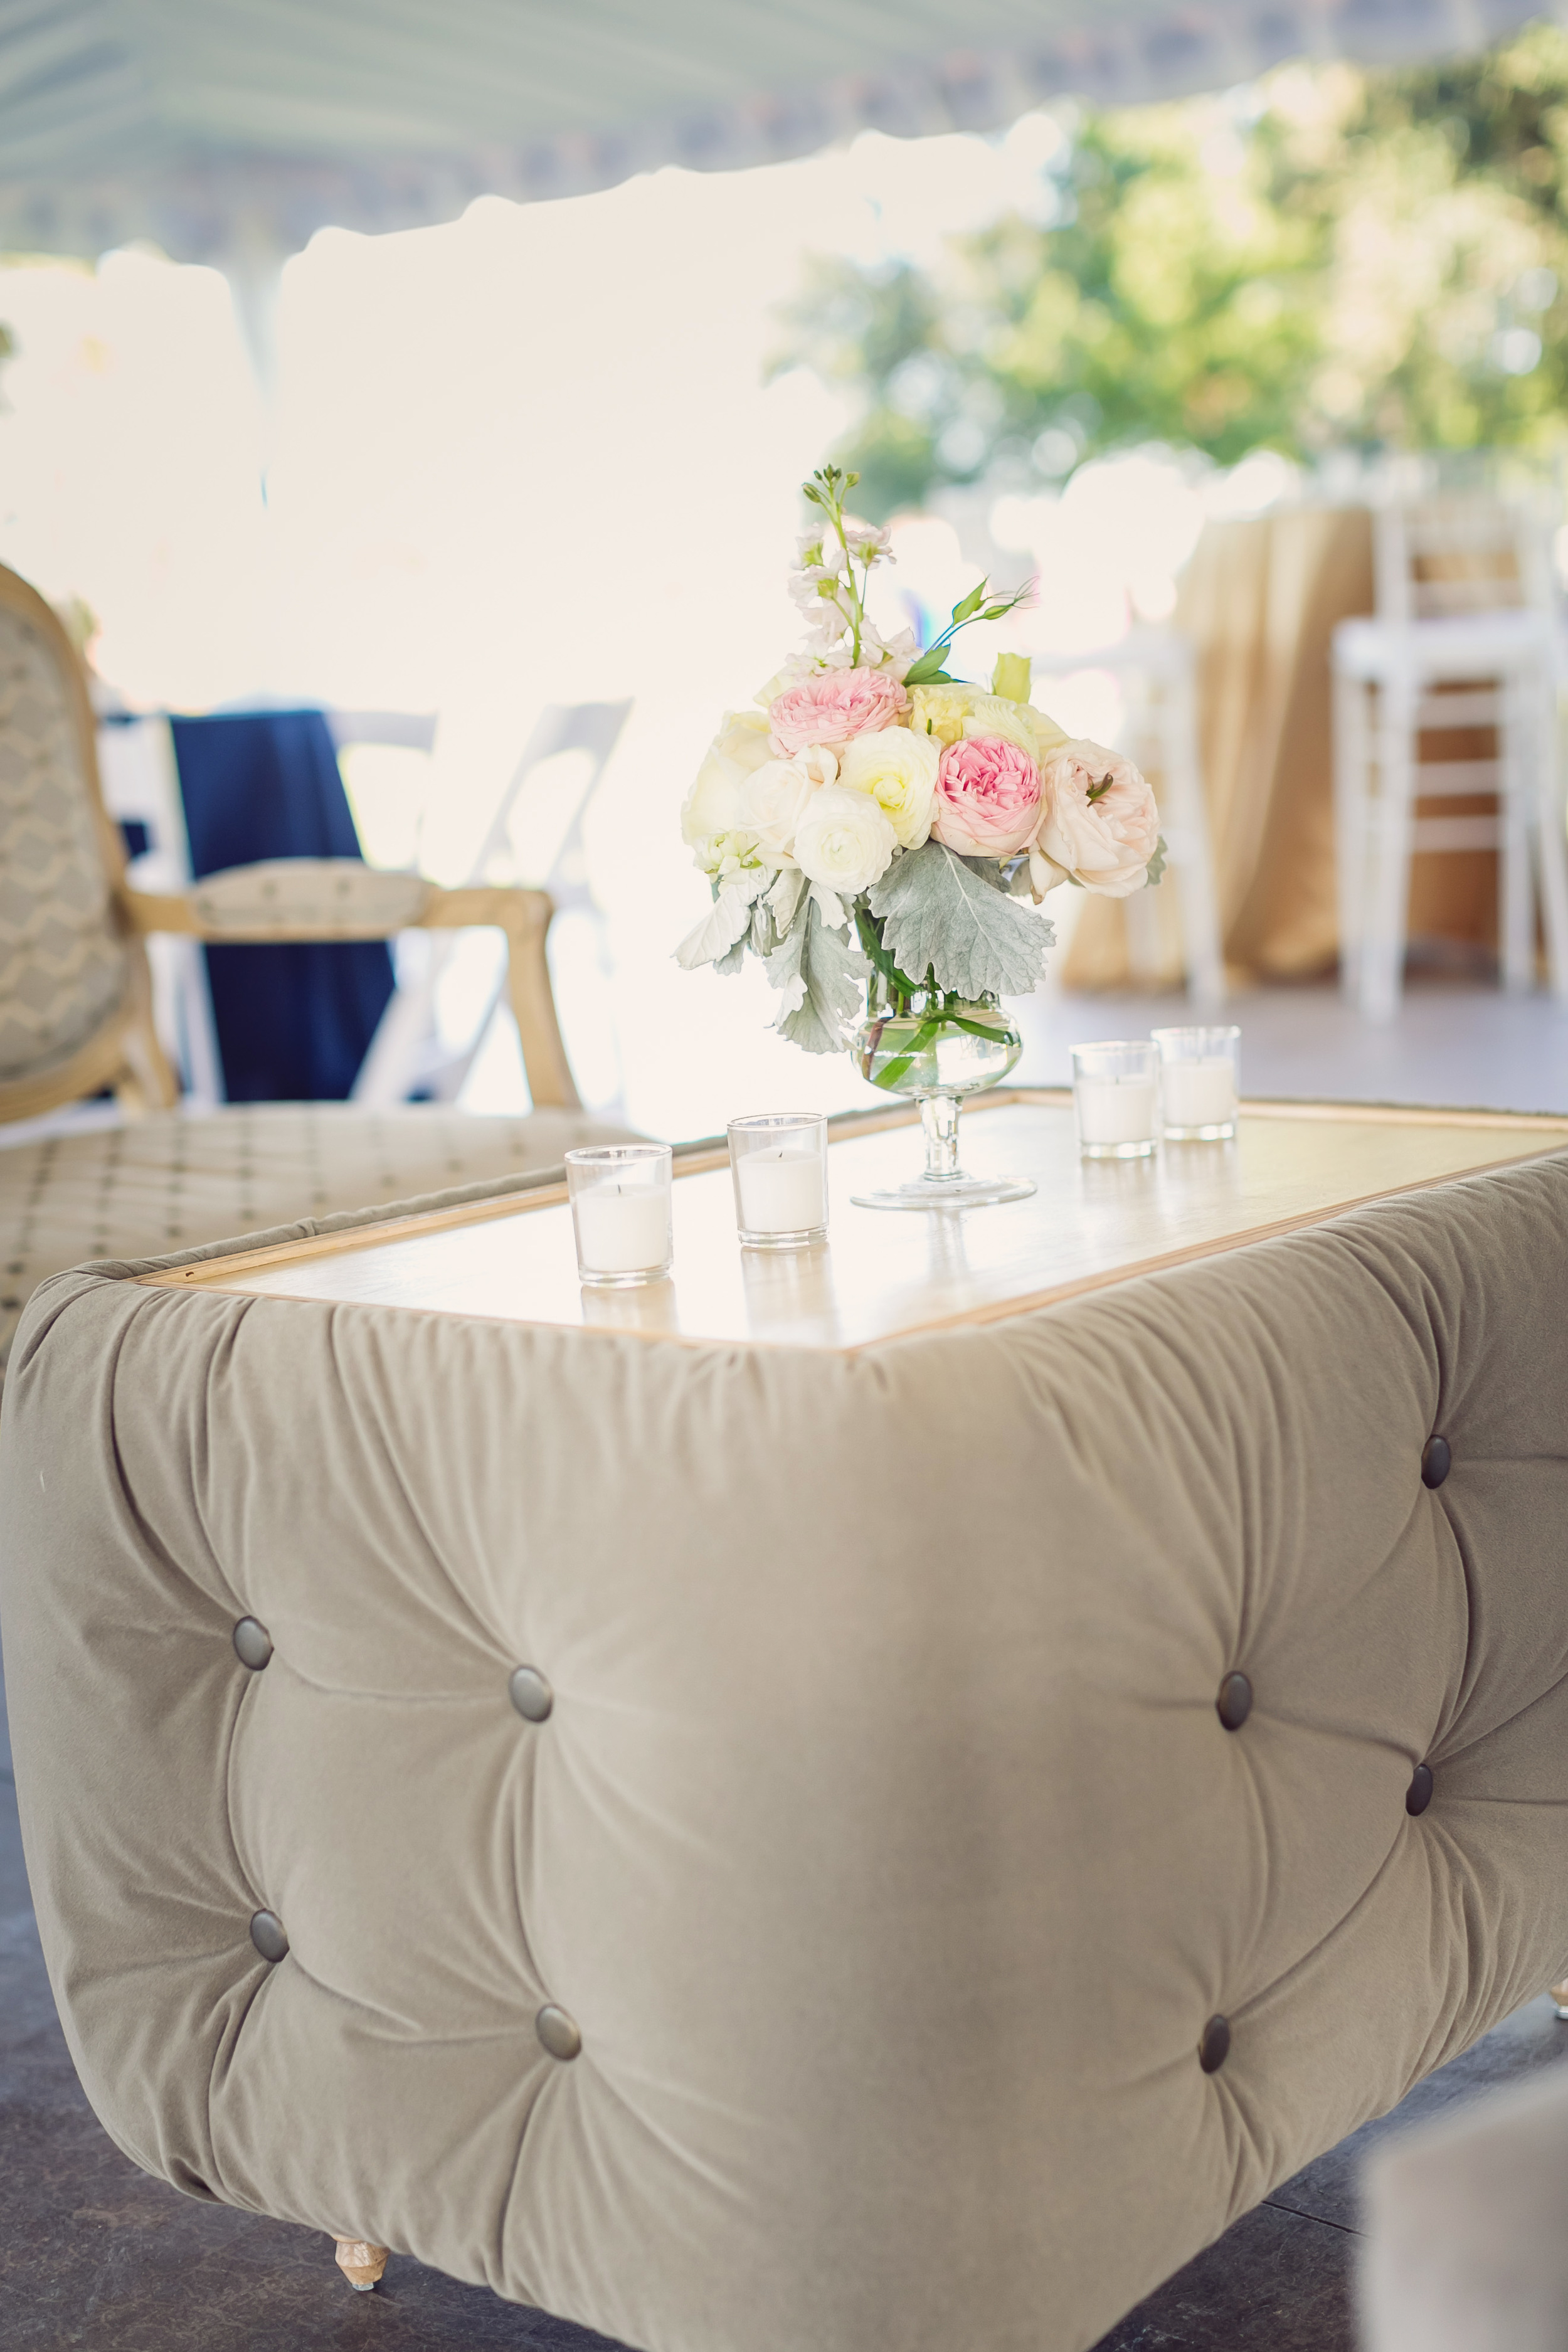 Custom lounge furniture rentals from Eventworks at Island House wedding in Charleston, SC